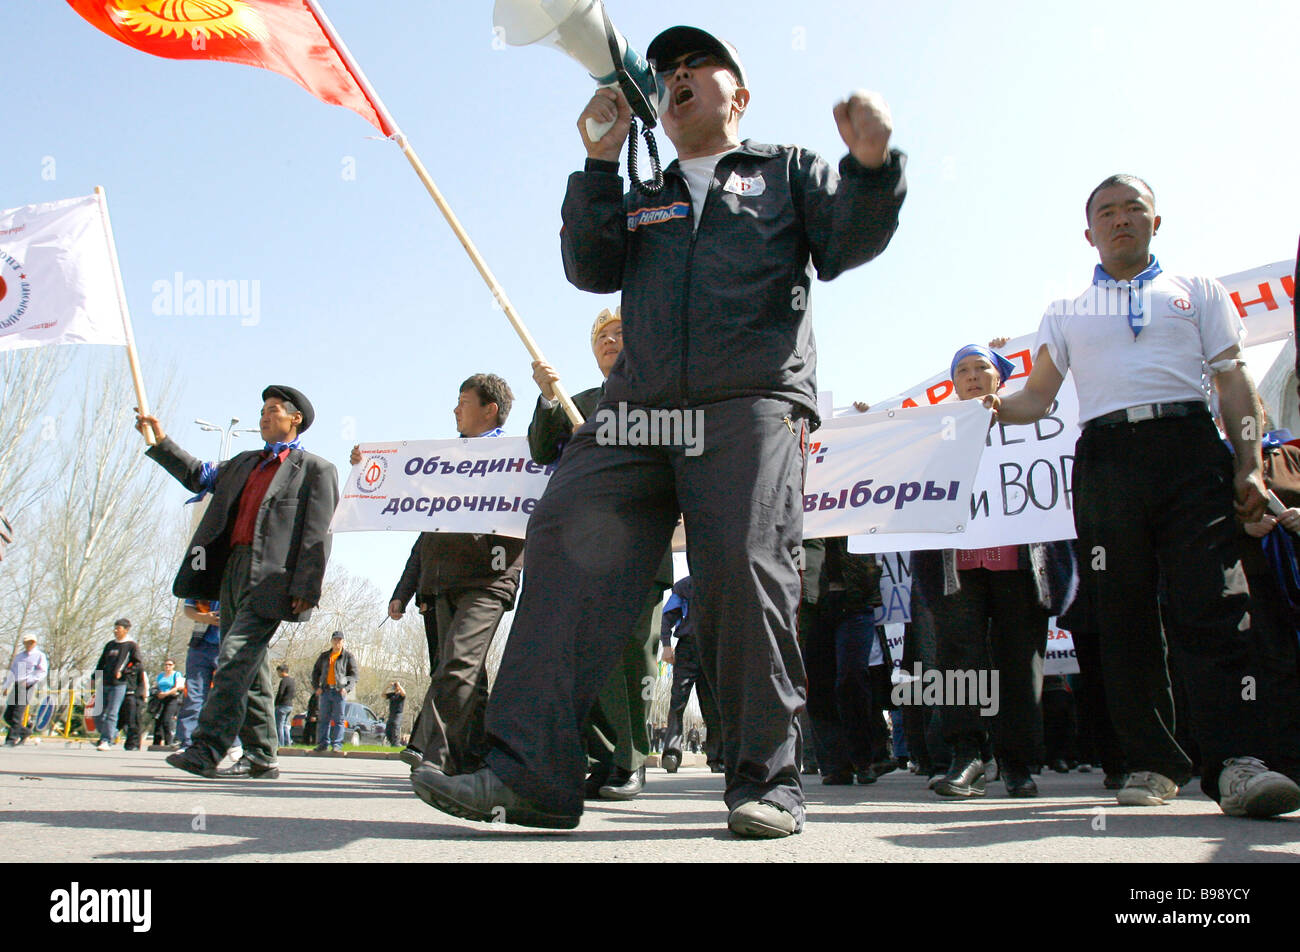 An opposition rally in Bishkek - Stock Image